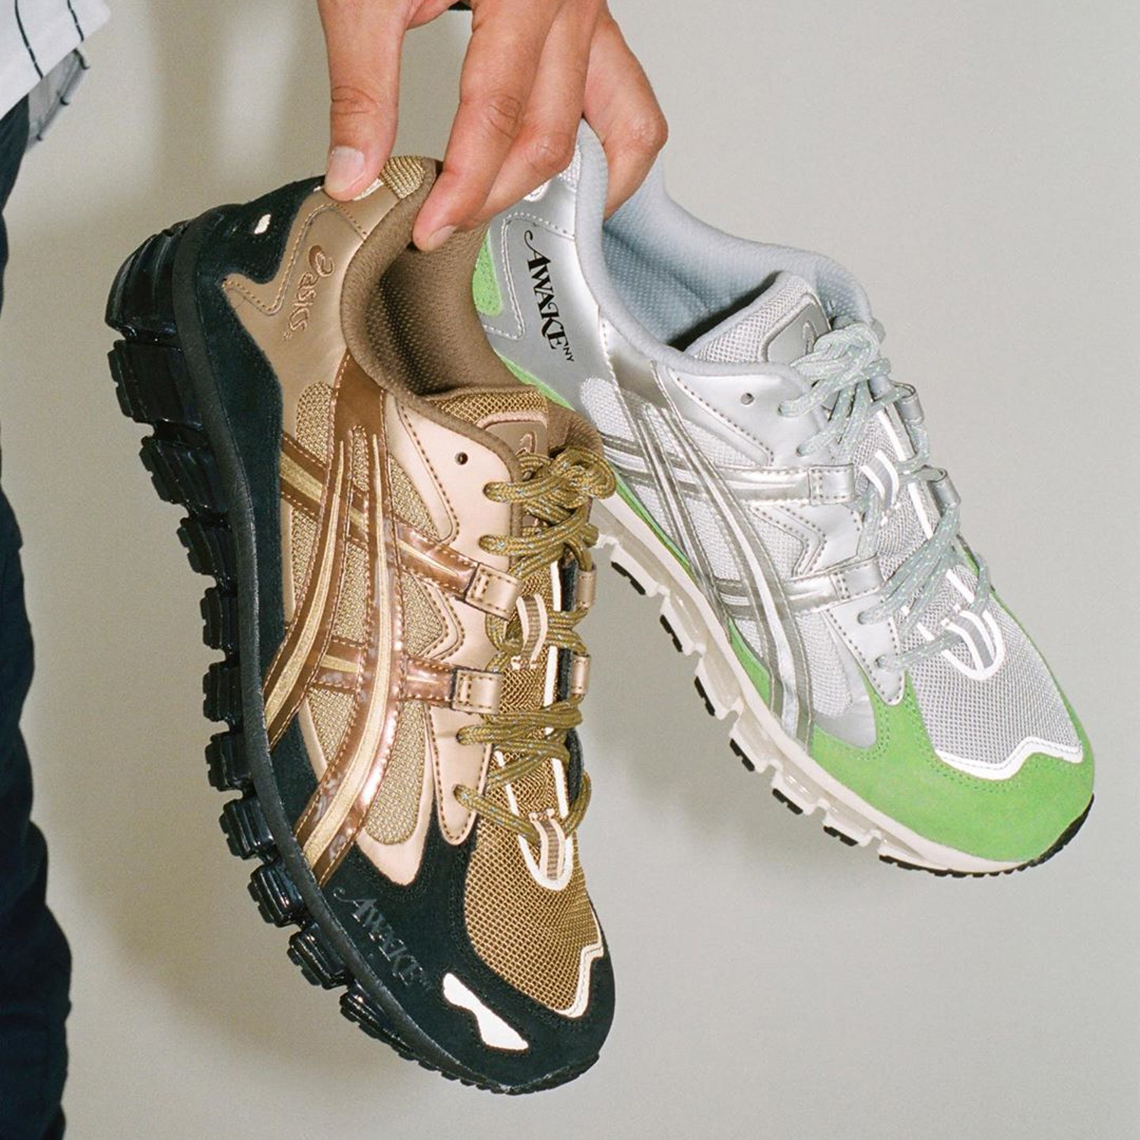 Awake NY Reveal Two Metallic ASICS GEL-Kayano 5 360 Collabs